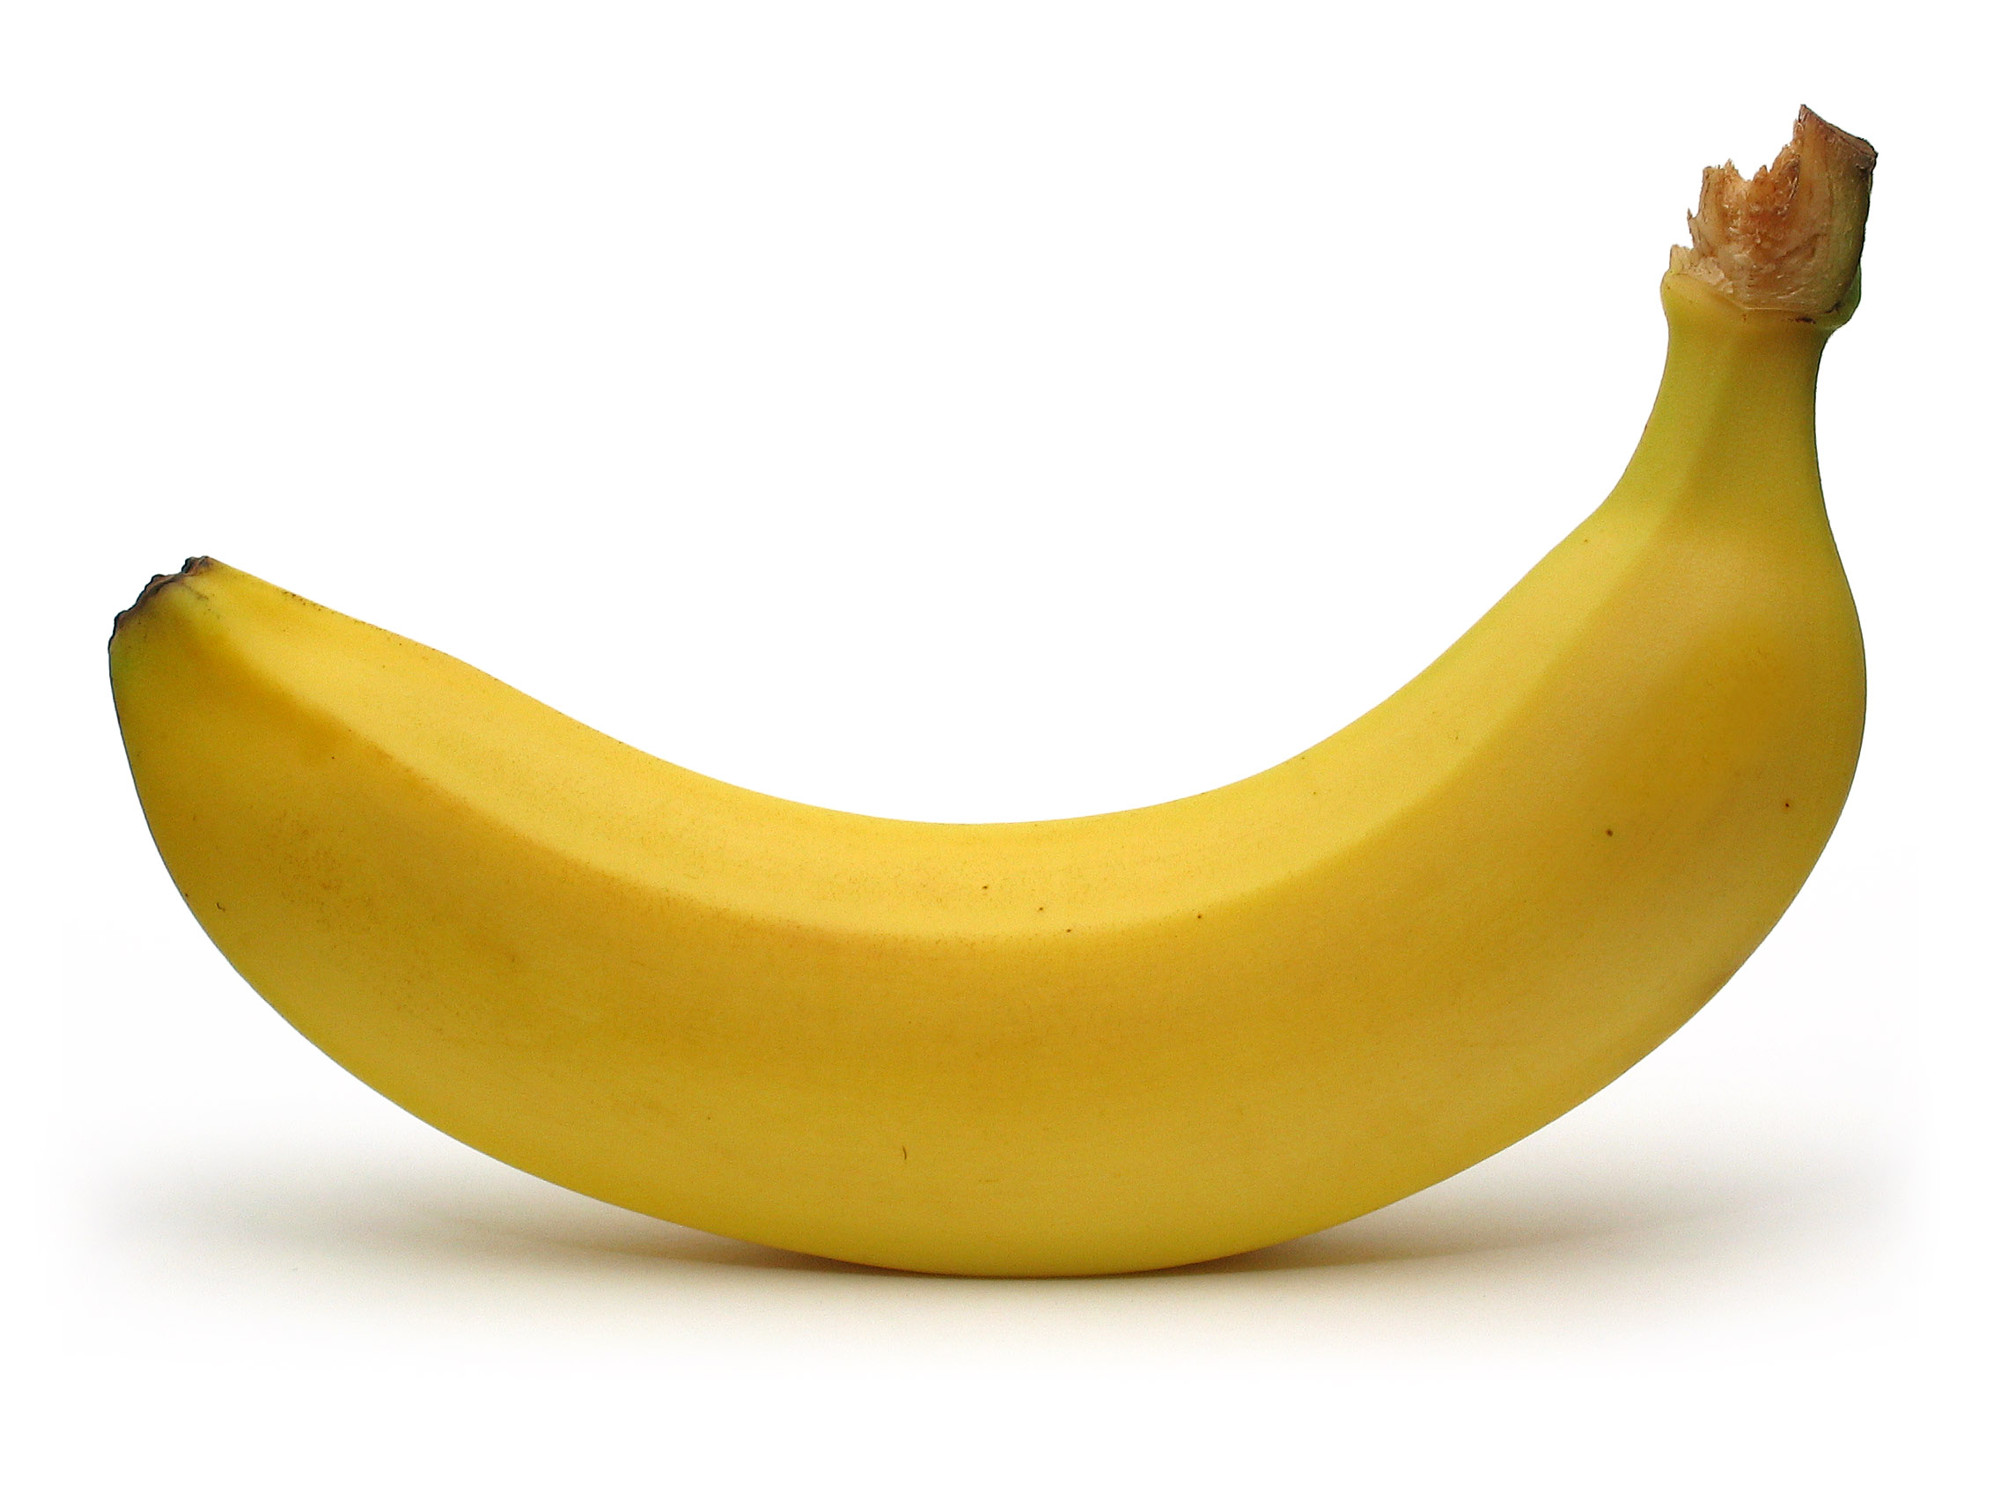 A Picture Of Radioactive Banana